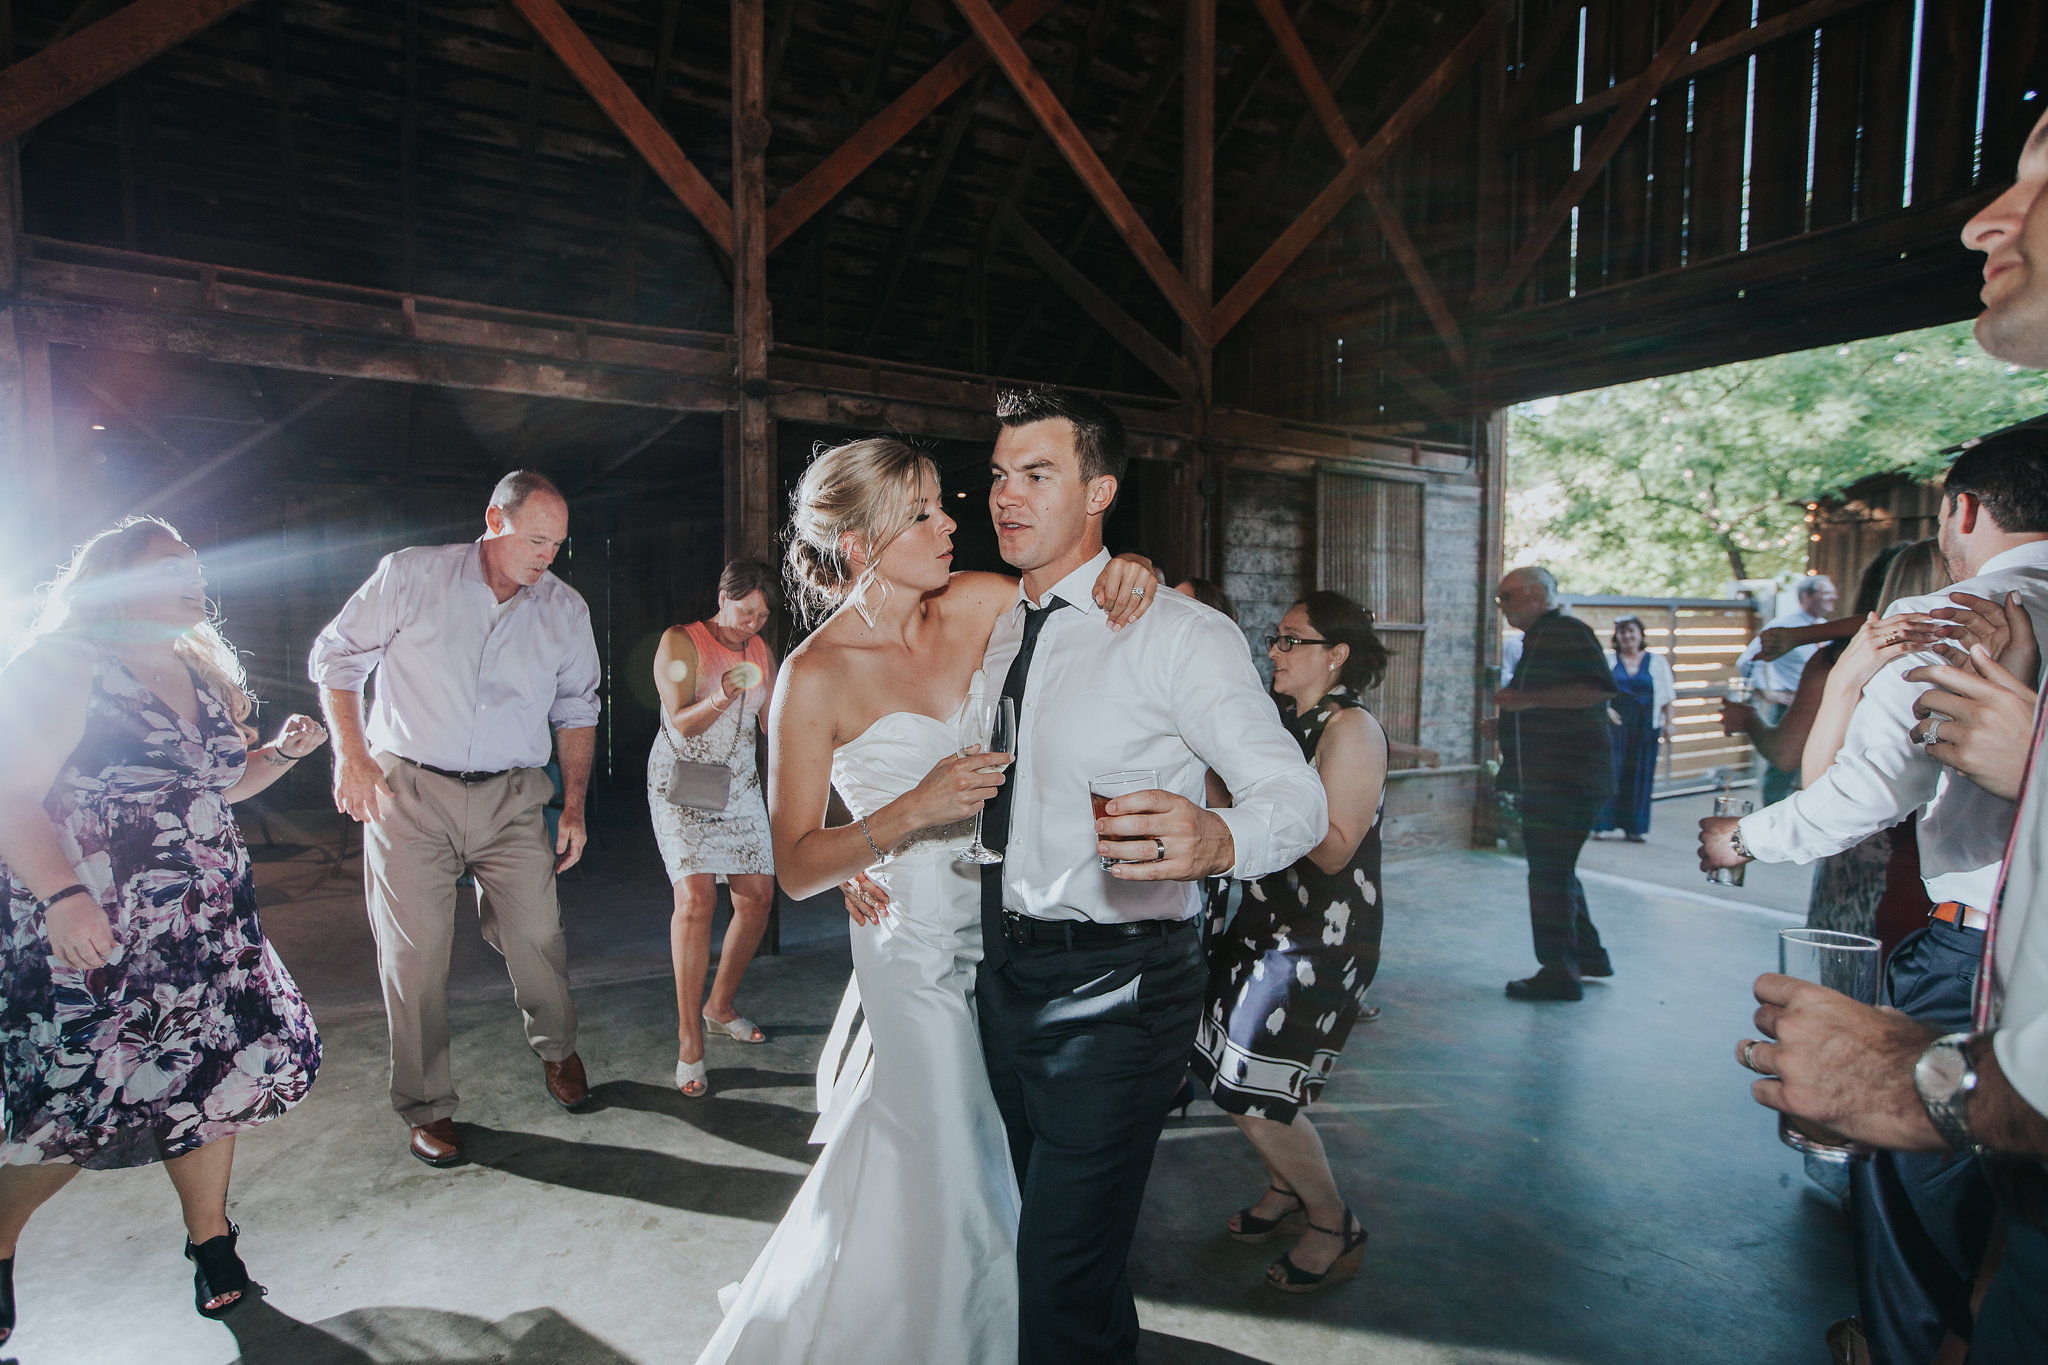 rus-farm-wedding-healdsburg-hwc-heald-wedding-consulting-dancing.jpg